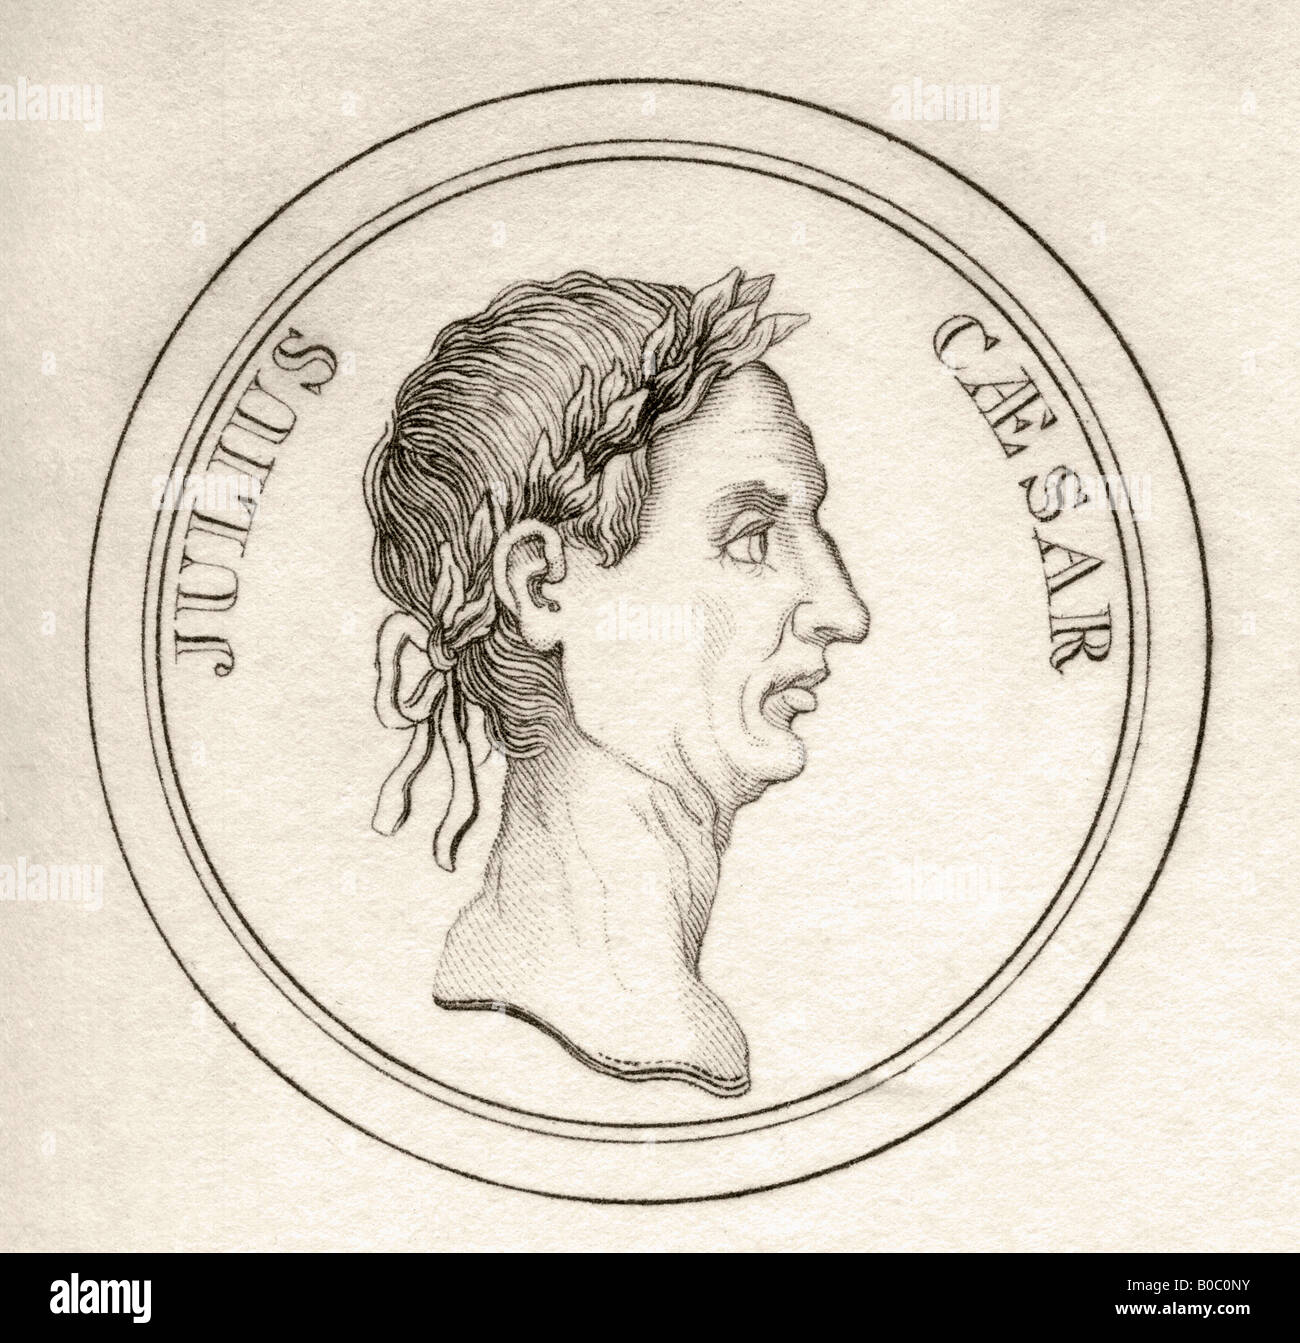 Gaius Julius Caesar BC100 44 Roman general dictator and statesman From the book Crabbs Historical Dictionary published - Stock Image